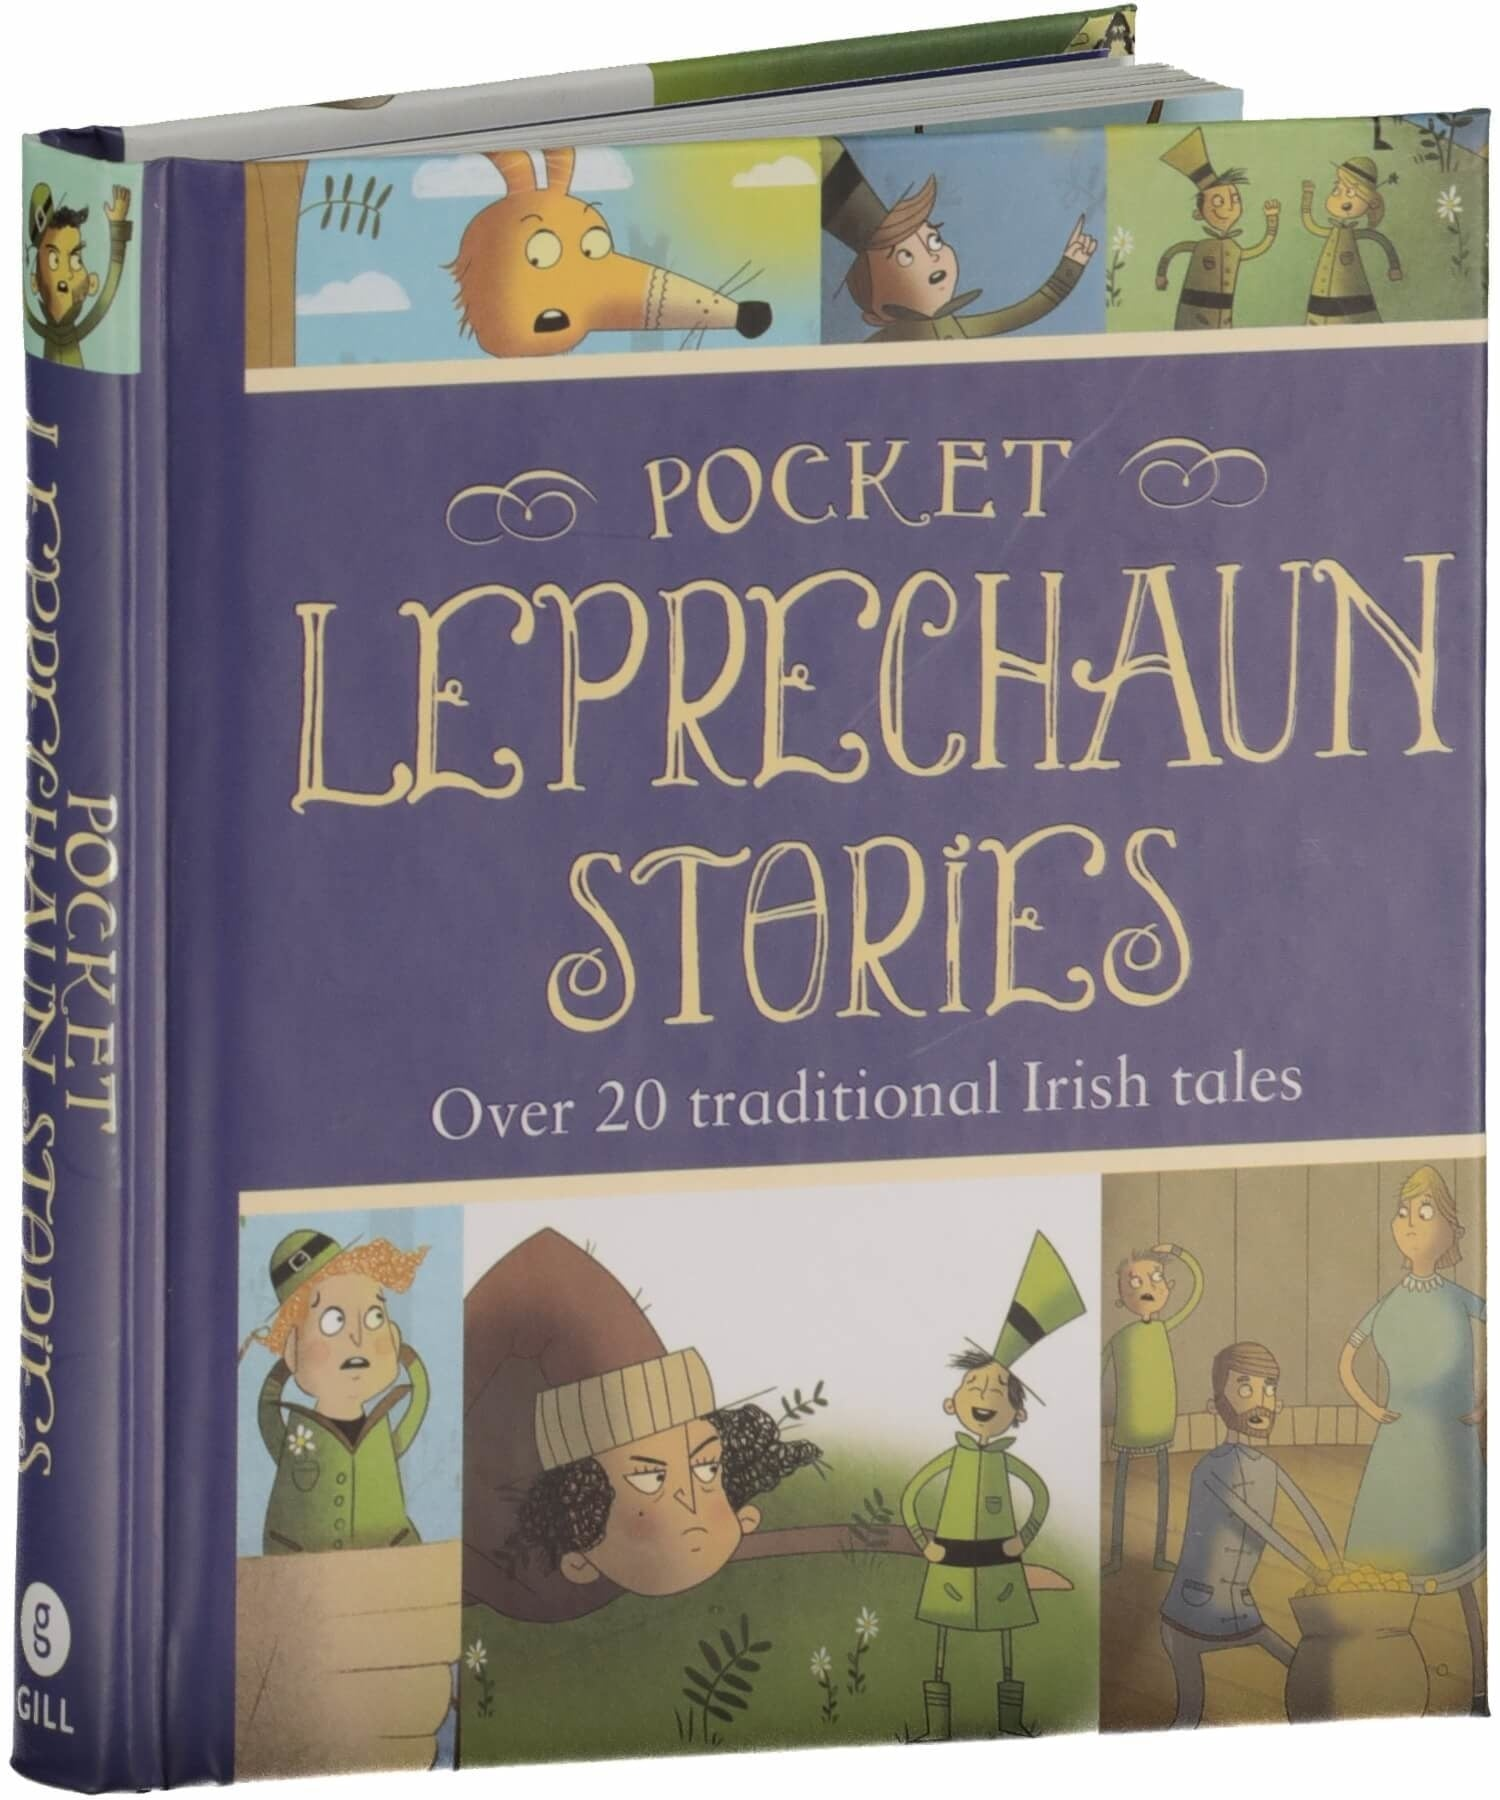 Pocket - Leprechaun Stories - [Gill & MacMillan] - Books & Stationery - Irish Gifts